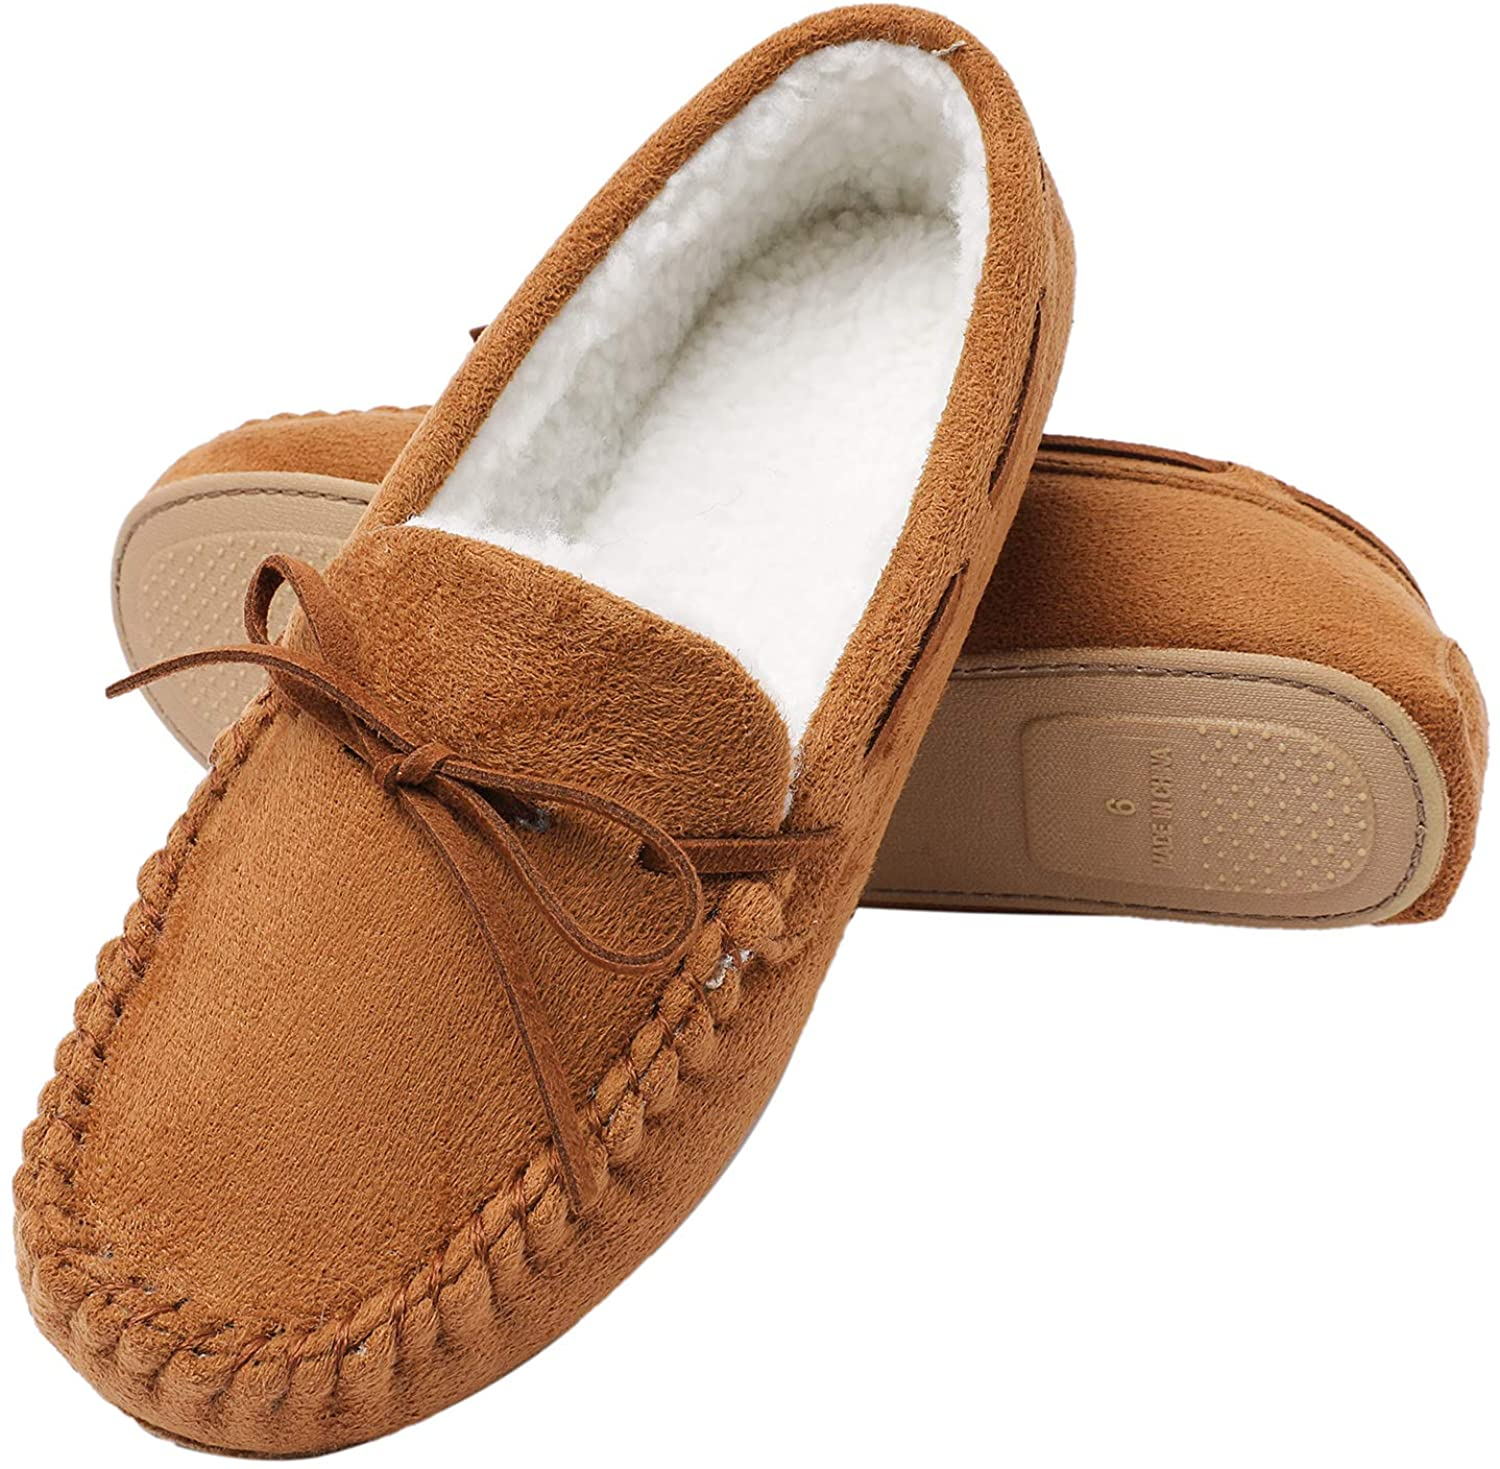 Veittes Womens House Slippers - Moccasins Slip On Soft Comzy Winter Indoor Shoes.